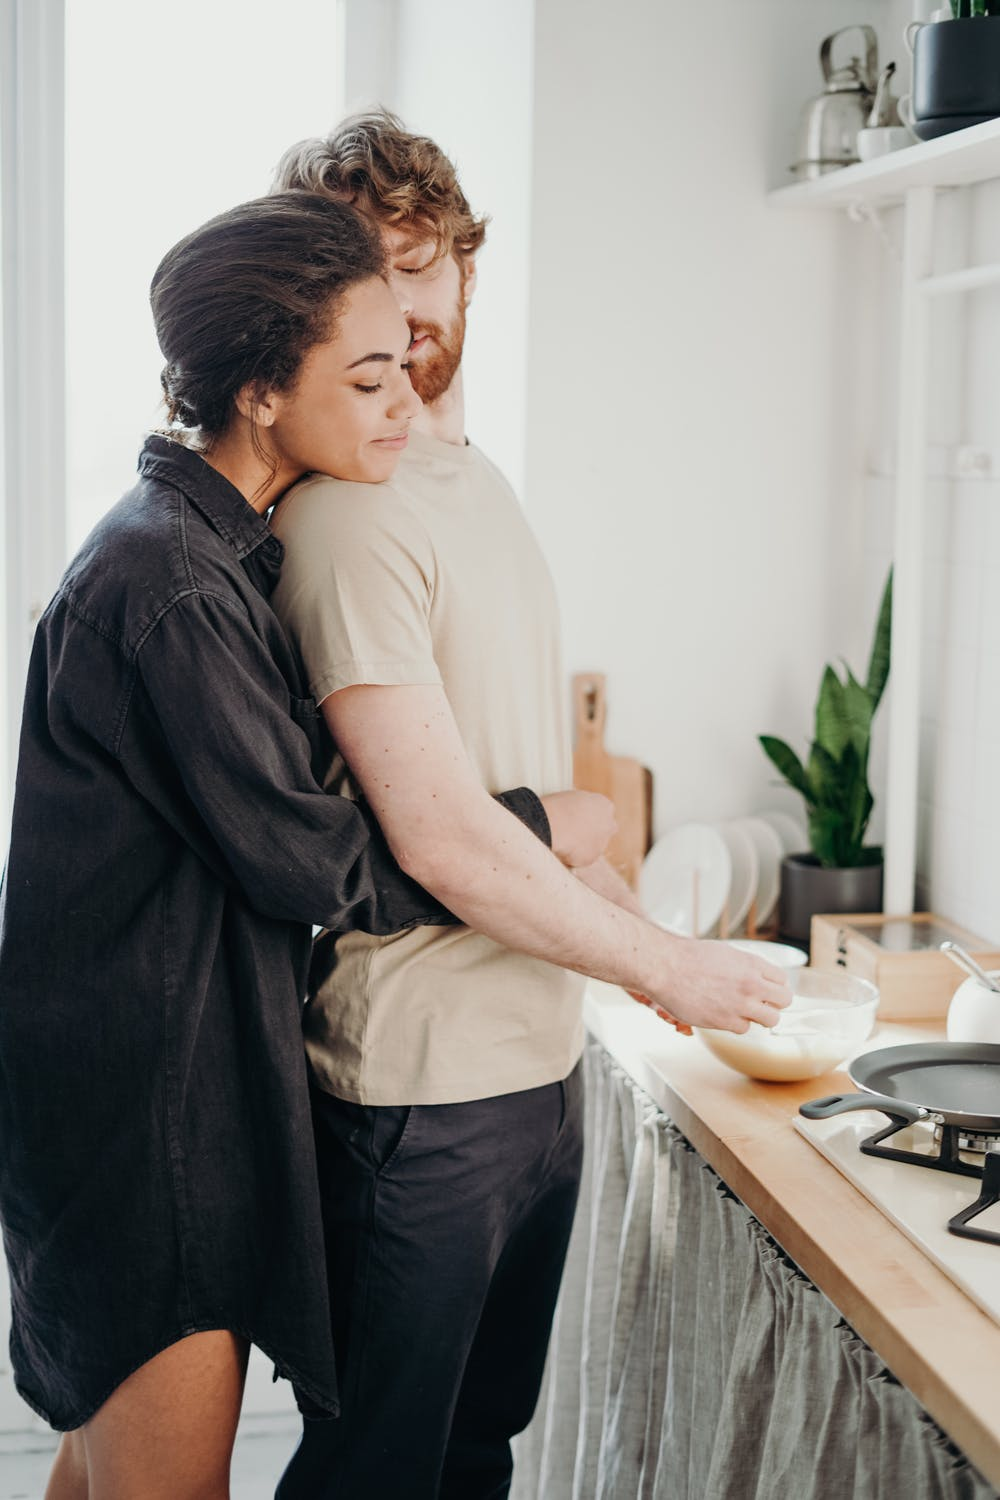 Woman hugging her man in the kitchen.   Photo: Pexels